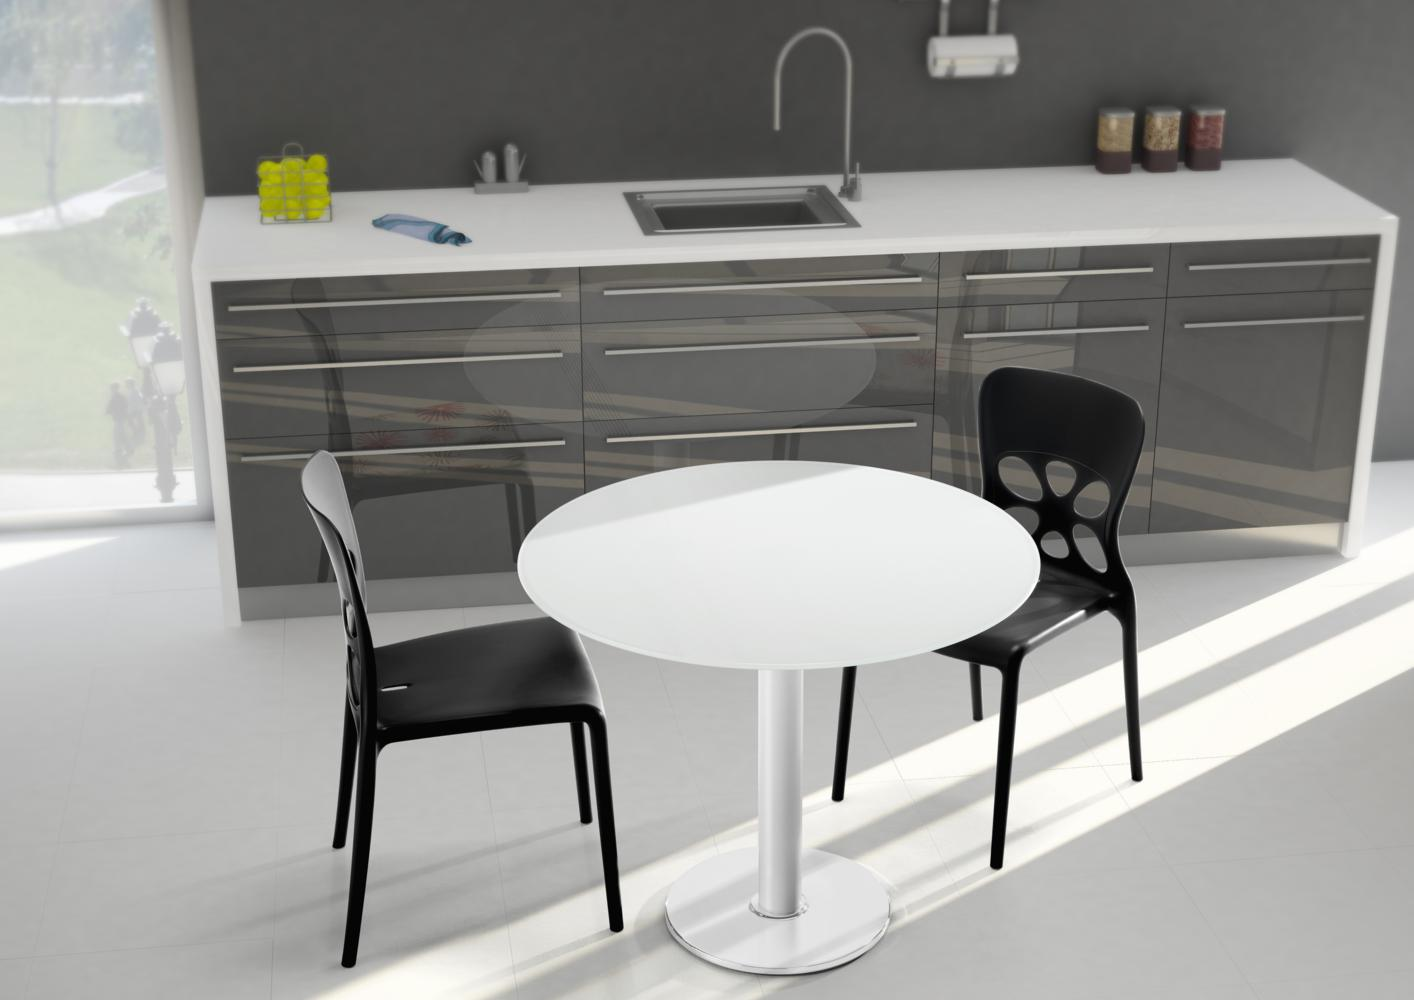 Acheter votre table ronde contemporaine chez simeuble for Table contemporaine